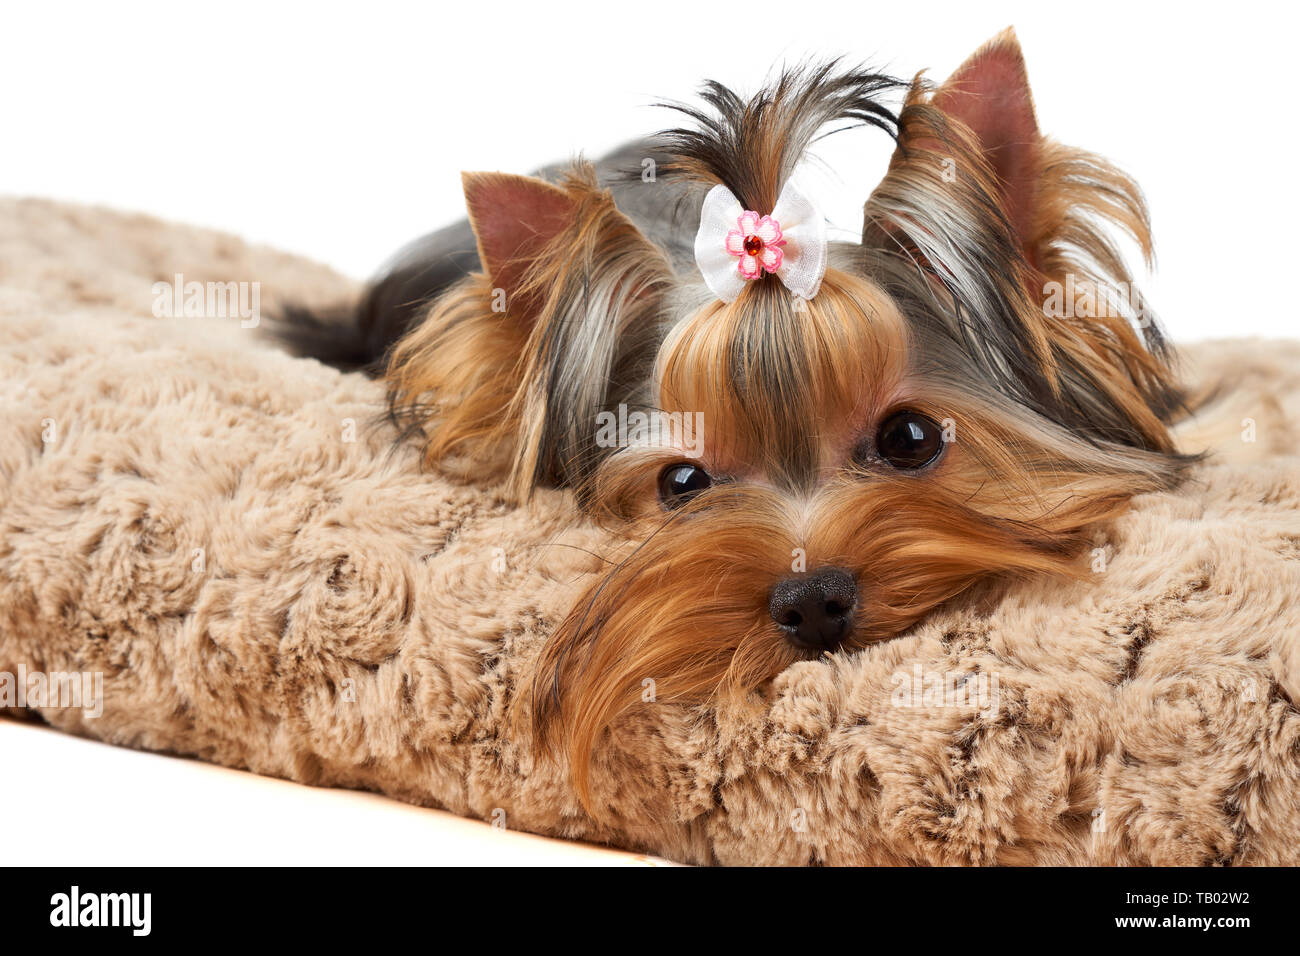 Yorkshire Terrier lies on brown dog bed - Stock Image